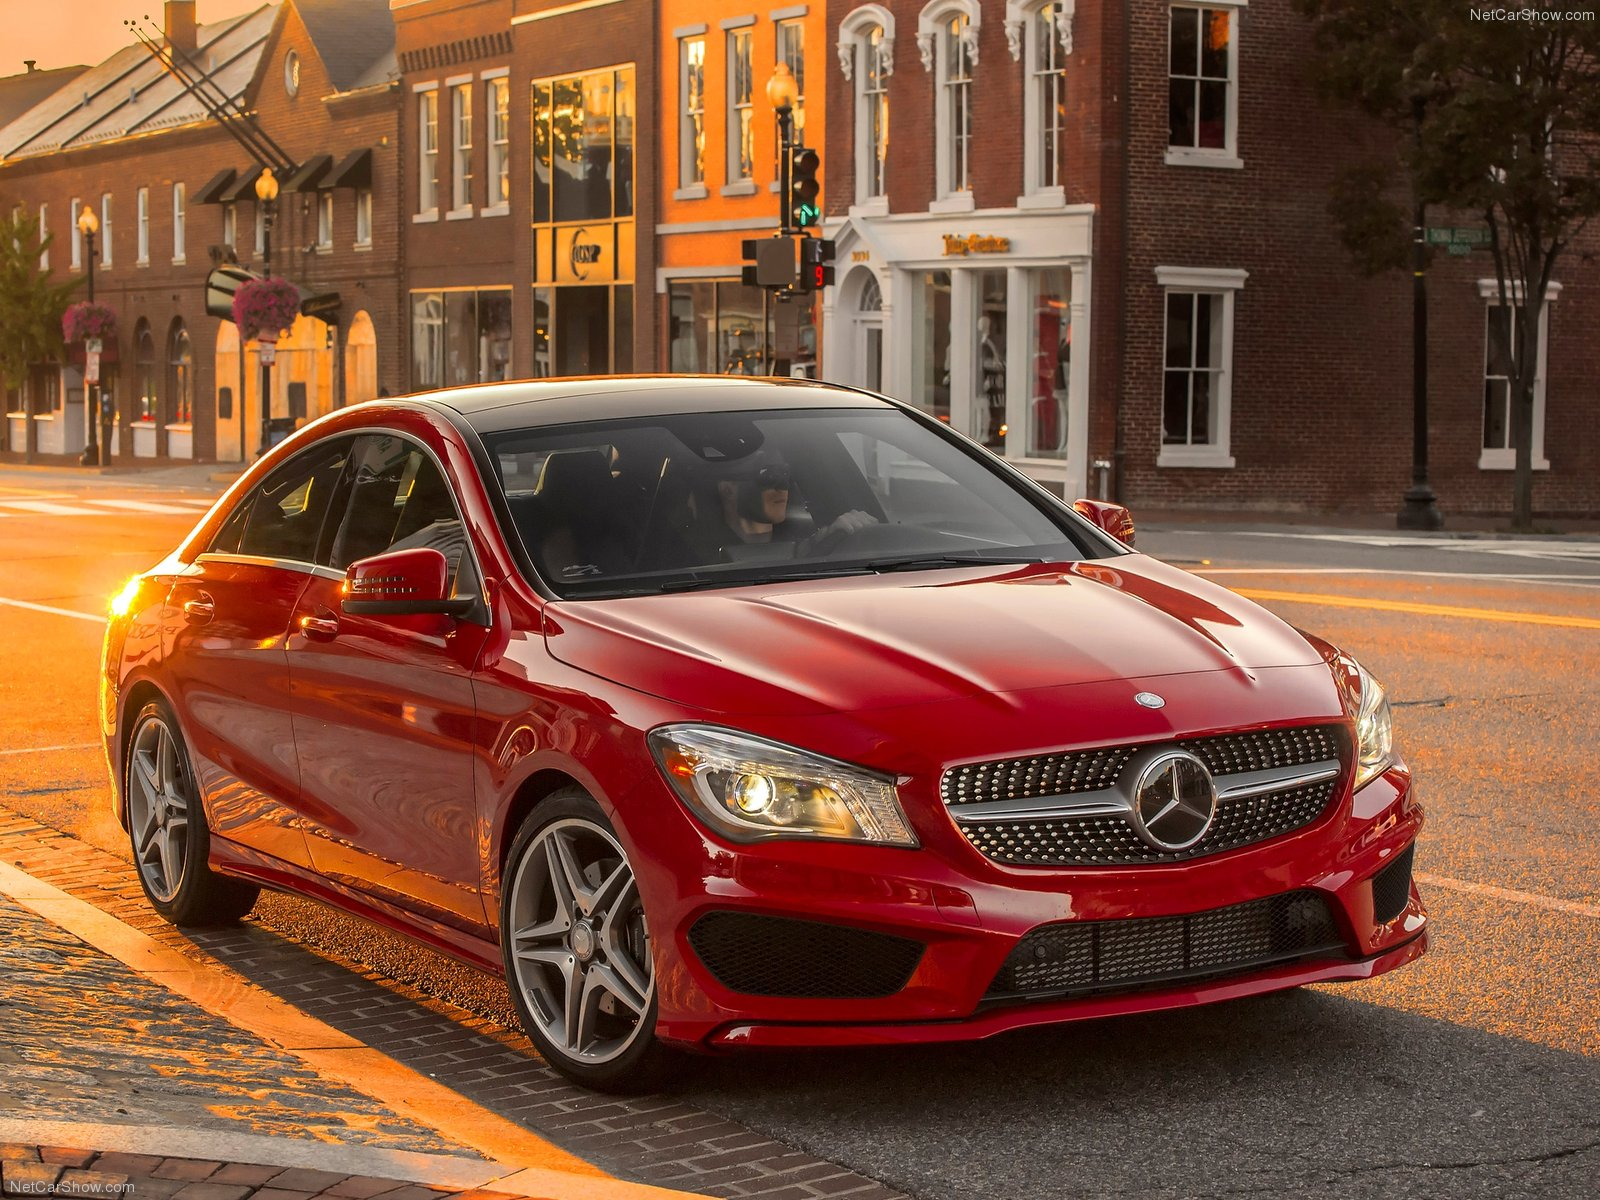 Mercedes Full Size Suv >> Mercedes-Benz CLA 250 Sport photos - PhotoGallery with 67 pics| CarsBase.com